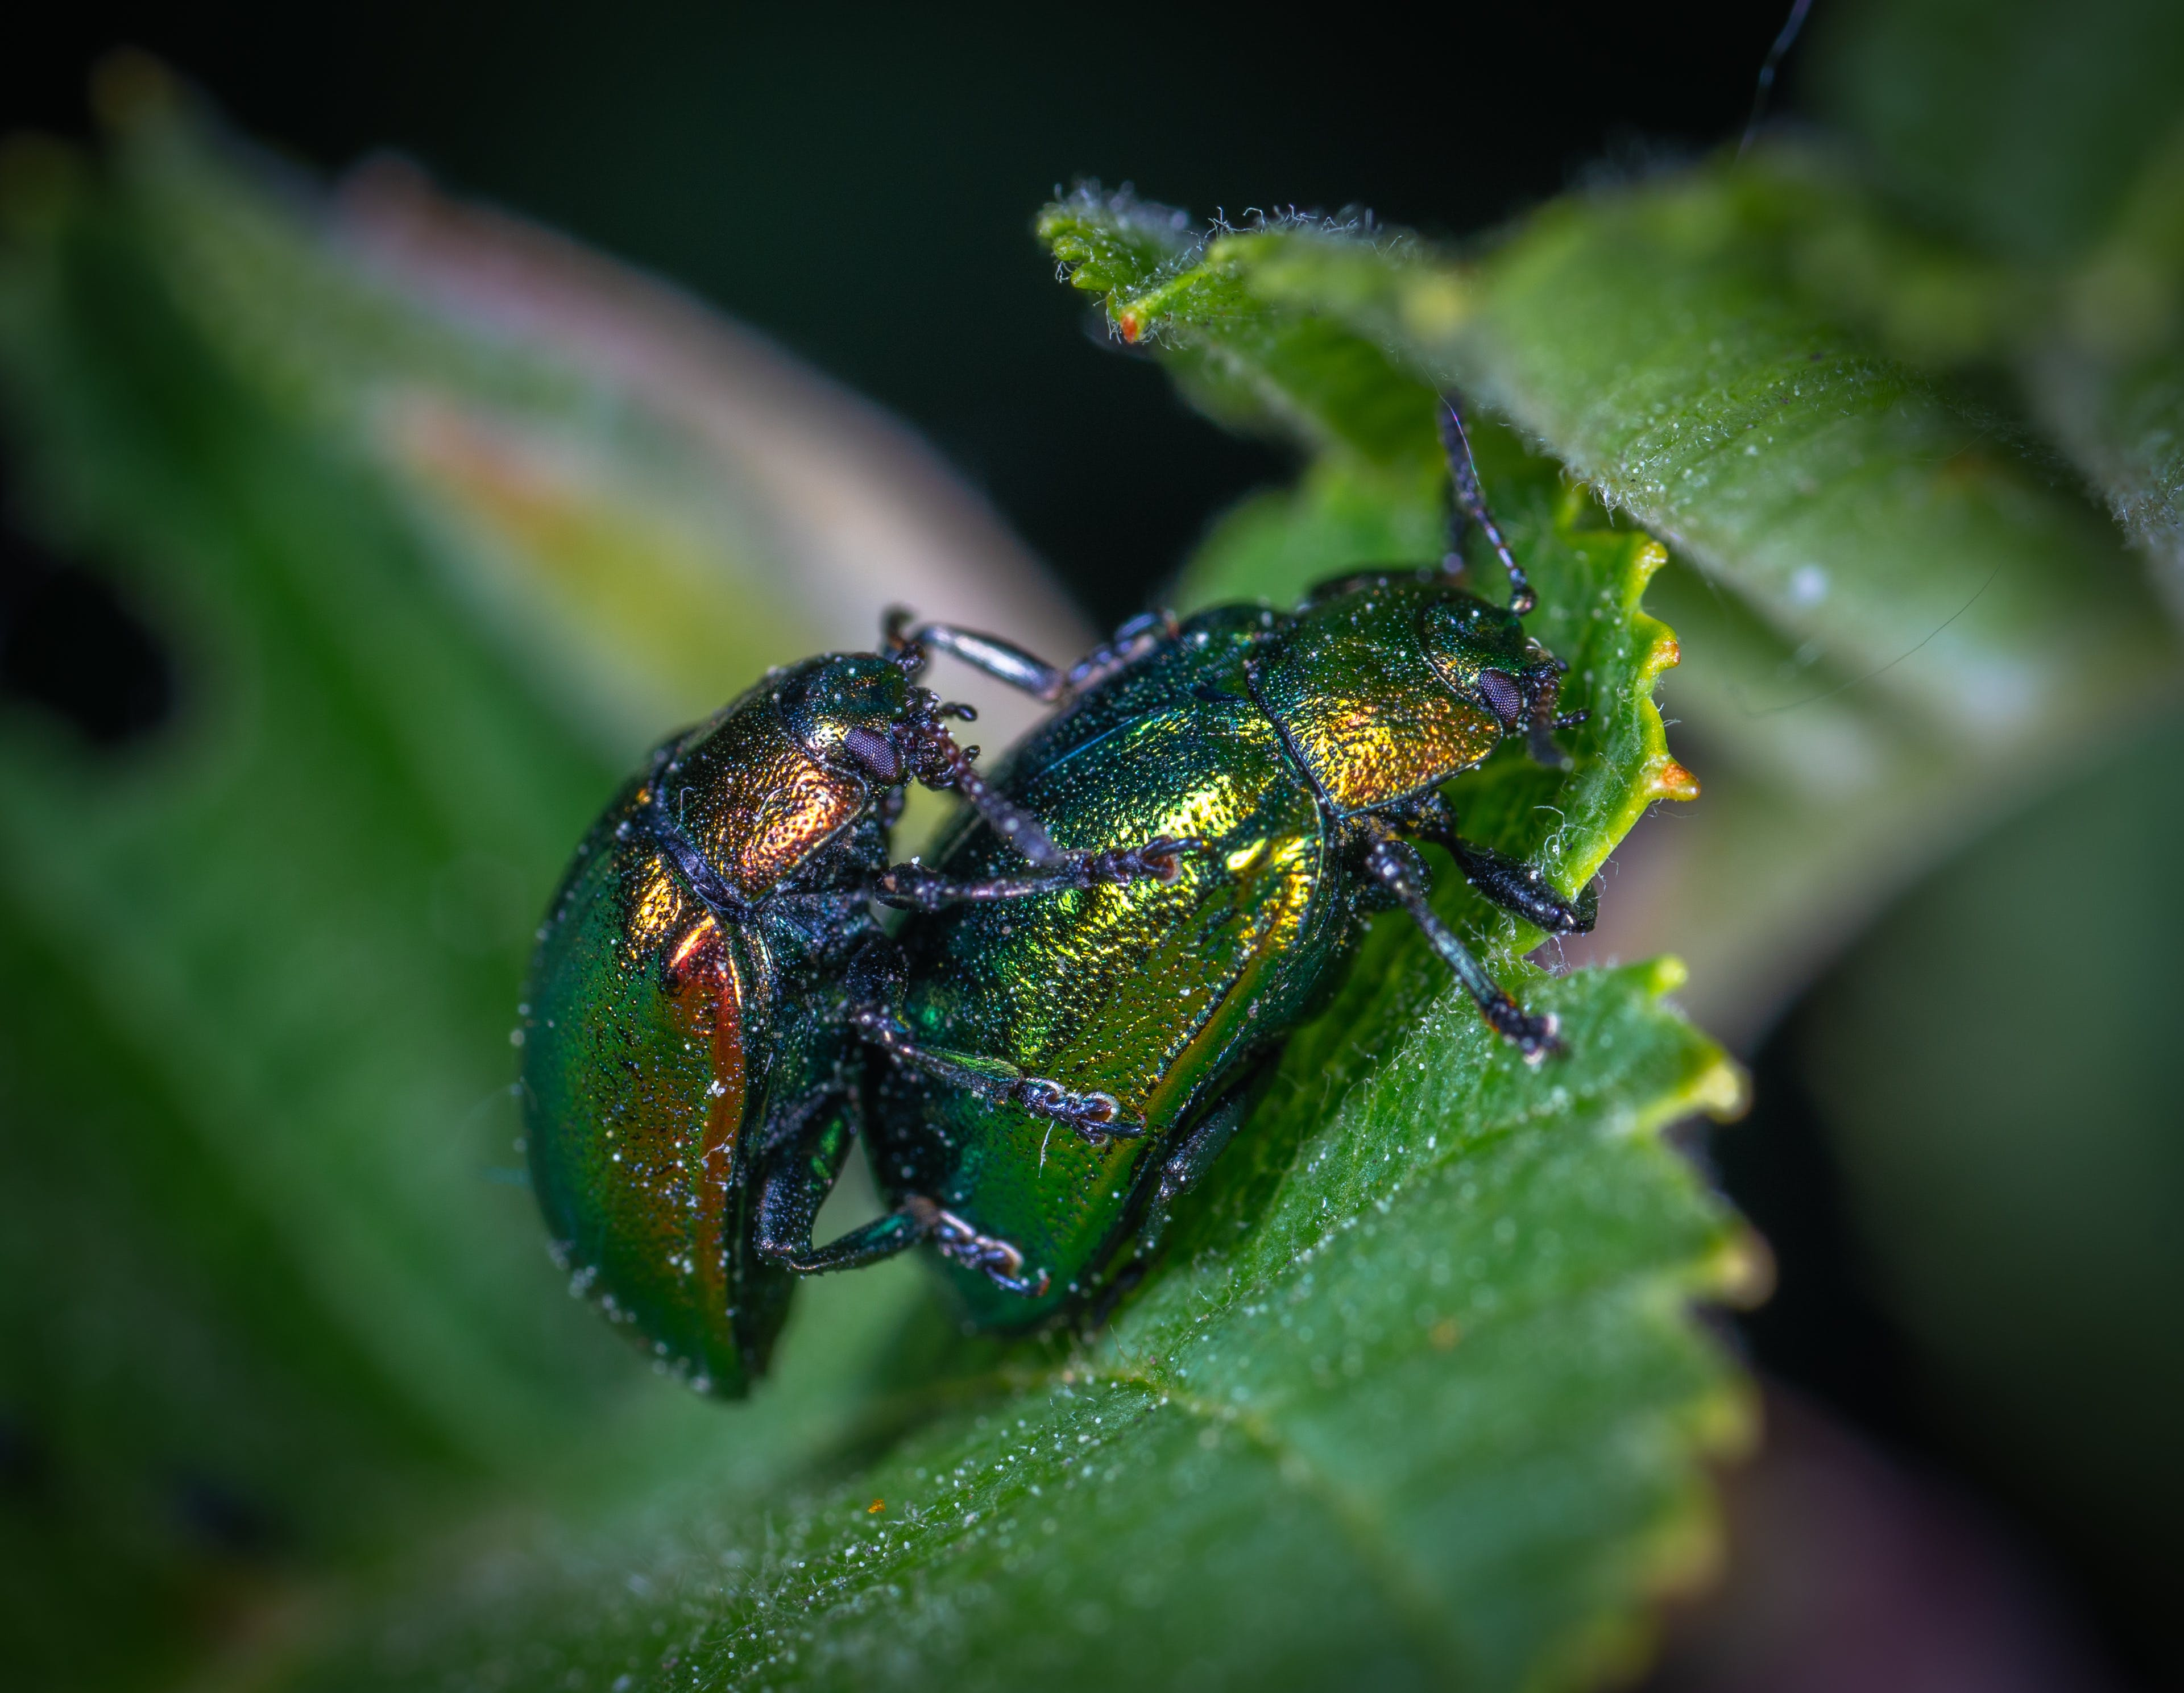 Two Green Beetles on Leaf